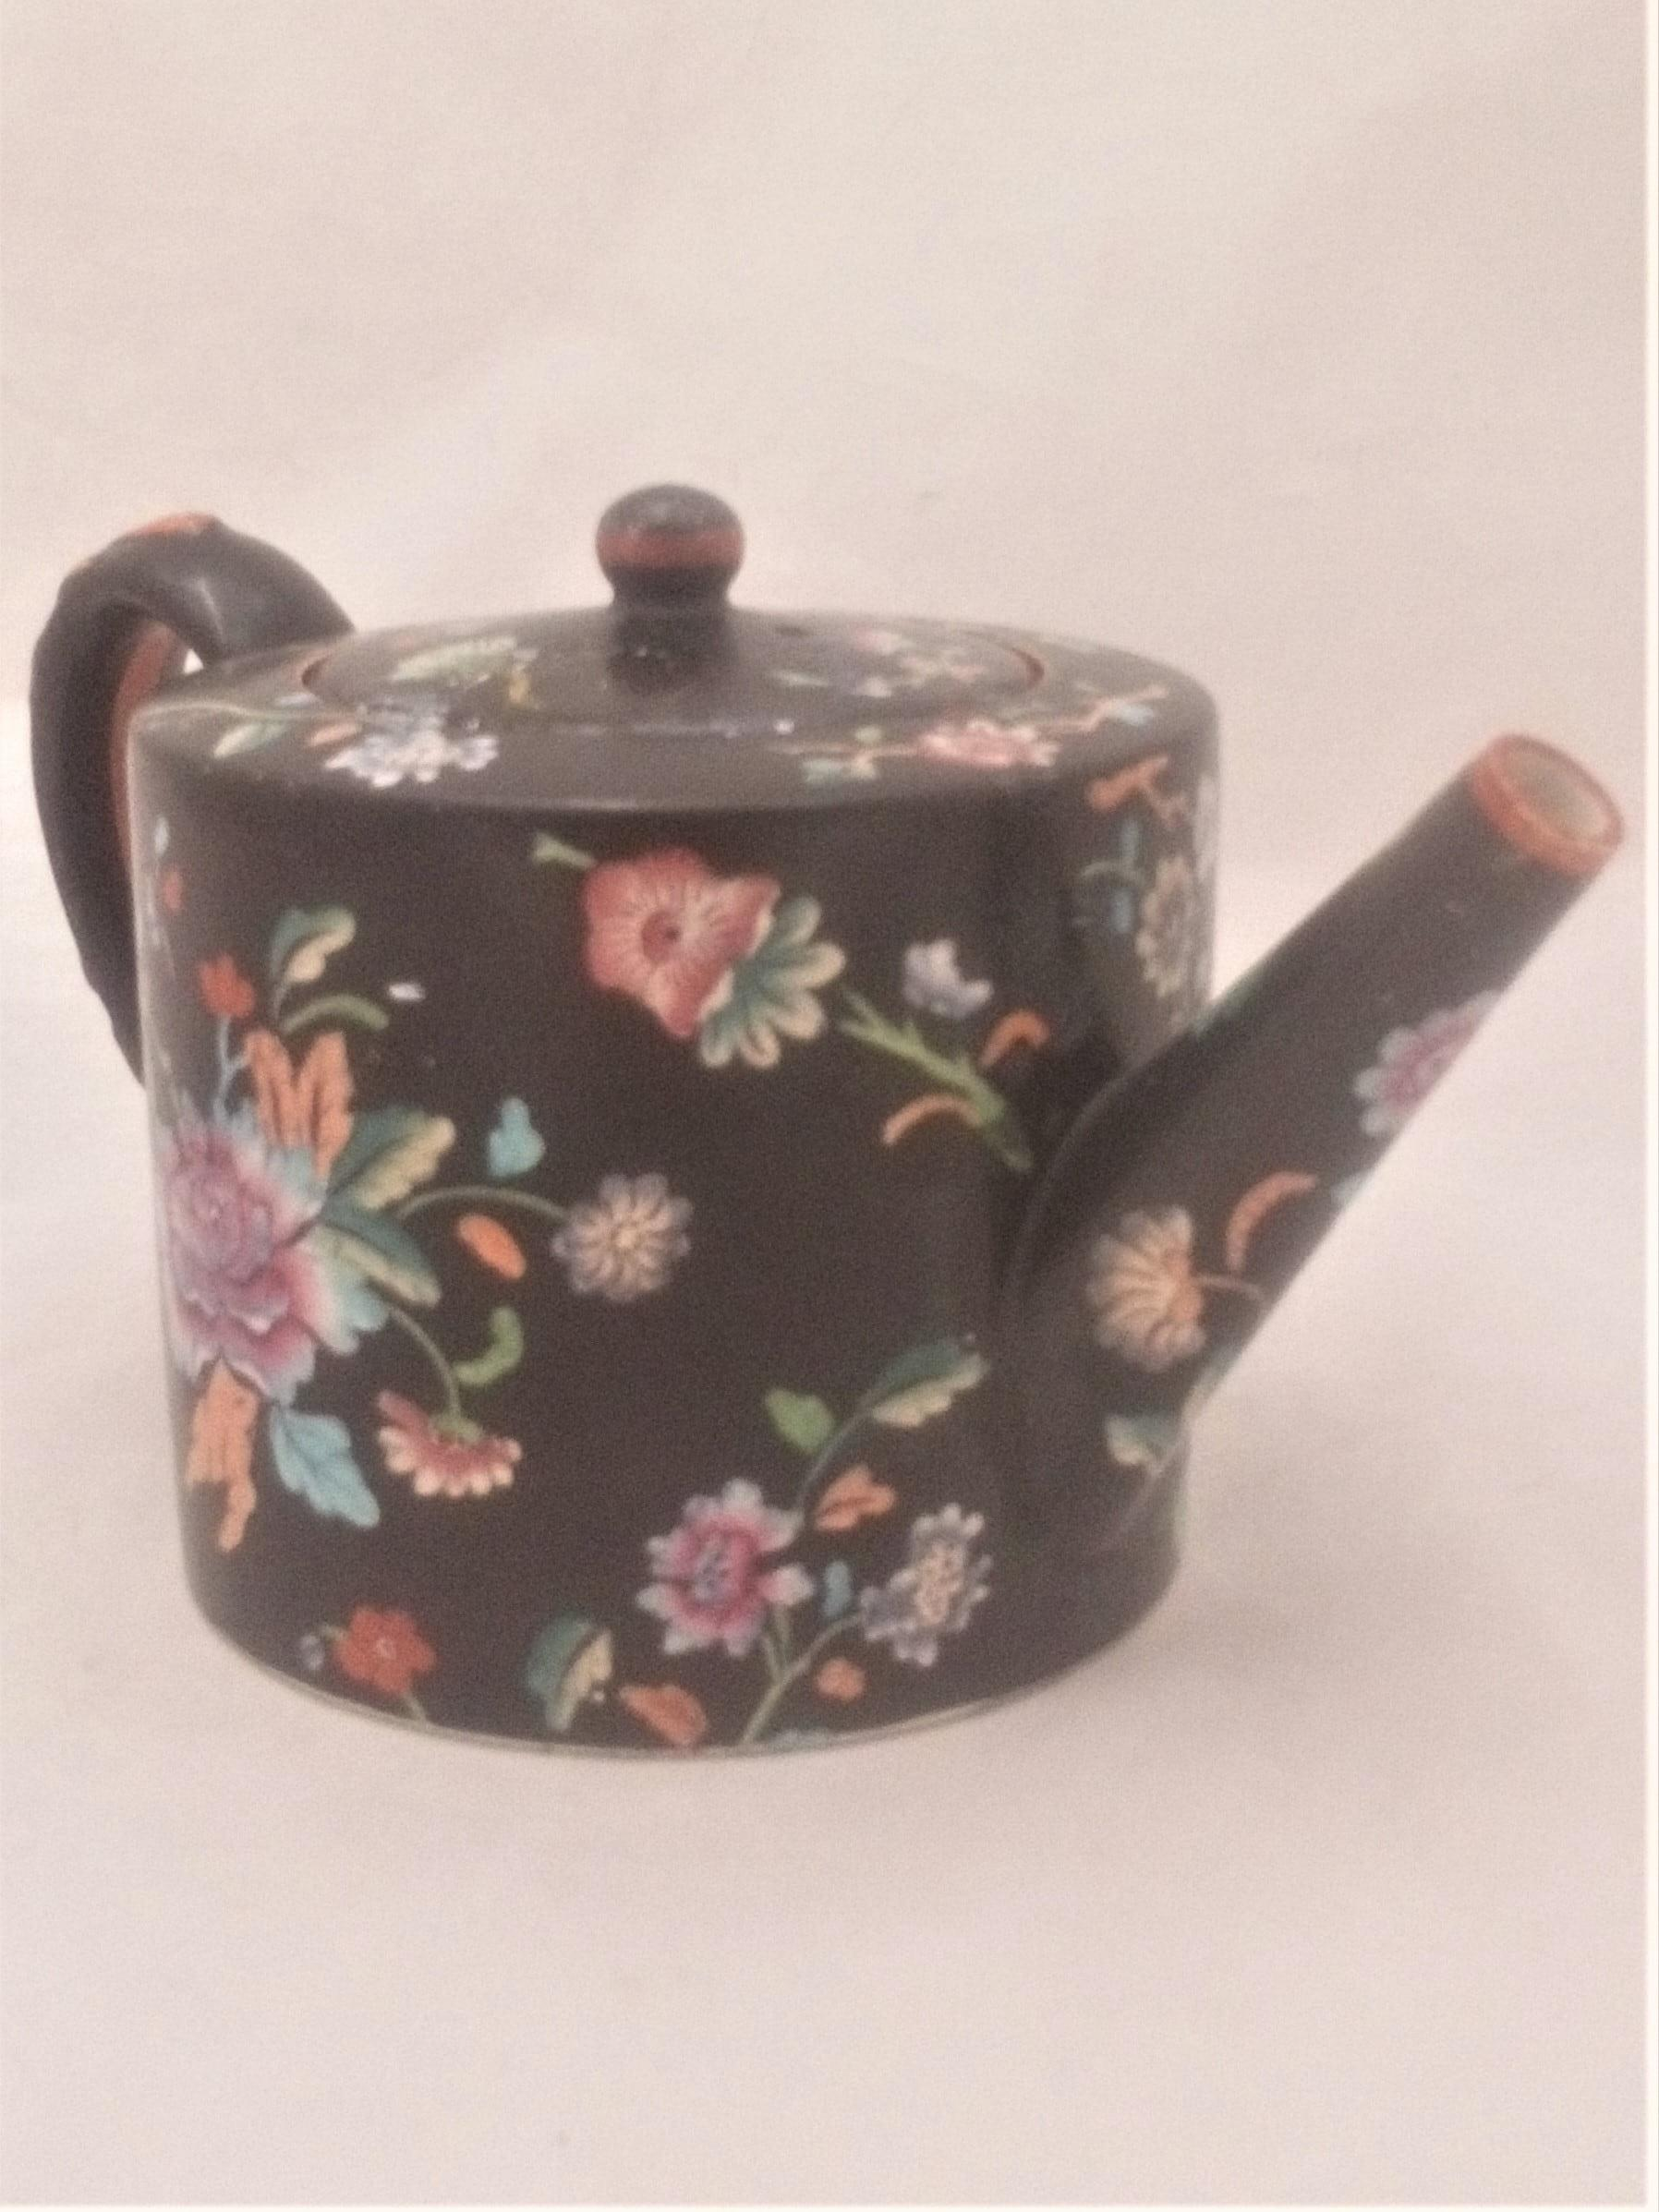 Antique Davenport transferware cylindrical teapot  decorated with the Chrysanthemum Floral Spray pattern on a black ground circa 1860